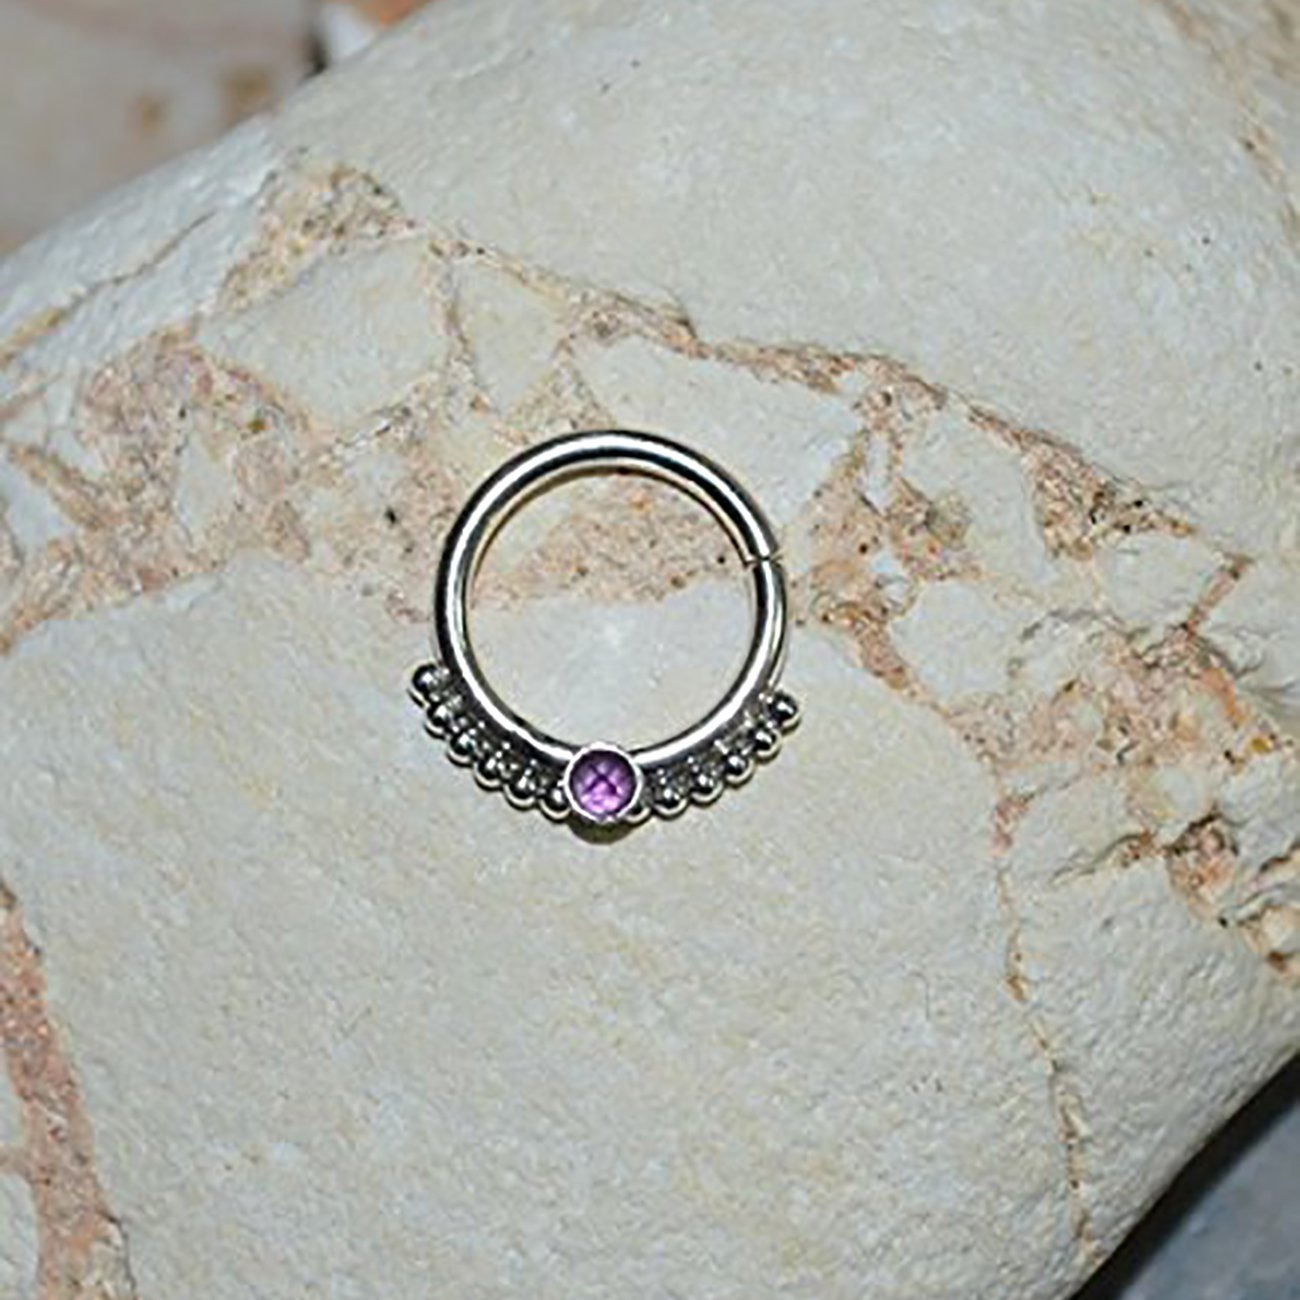 2mm Amethyst NIPPLE RING 16g//Silver Septum Ring - Septum Jewelry - Nipple Piercing - Nipple Jewelry - Body Piercing - Septum Piercing